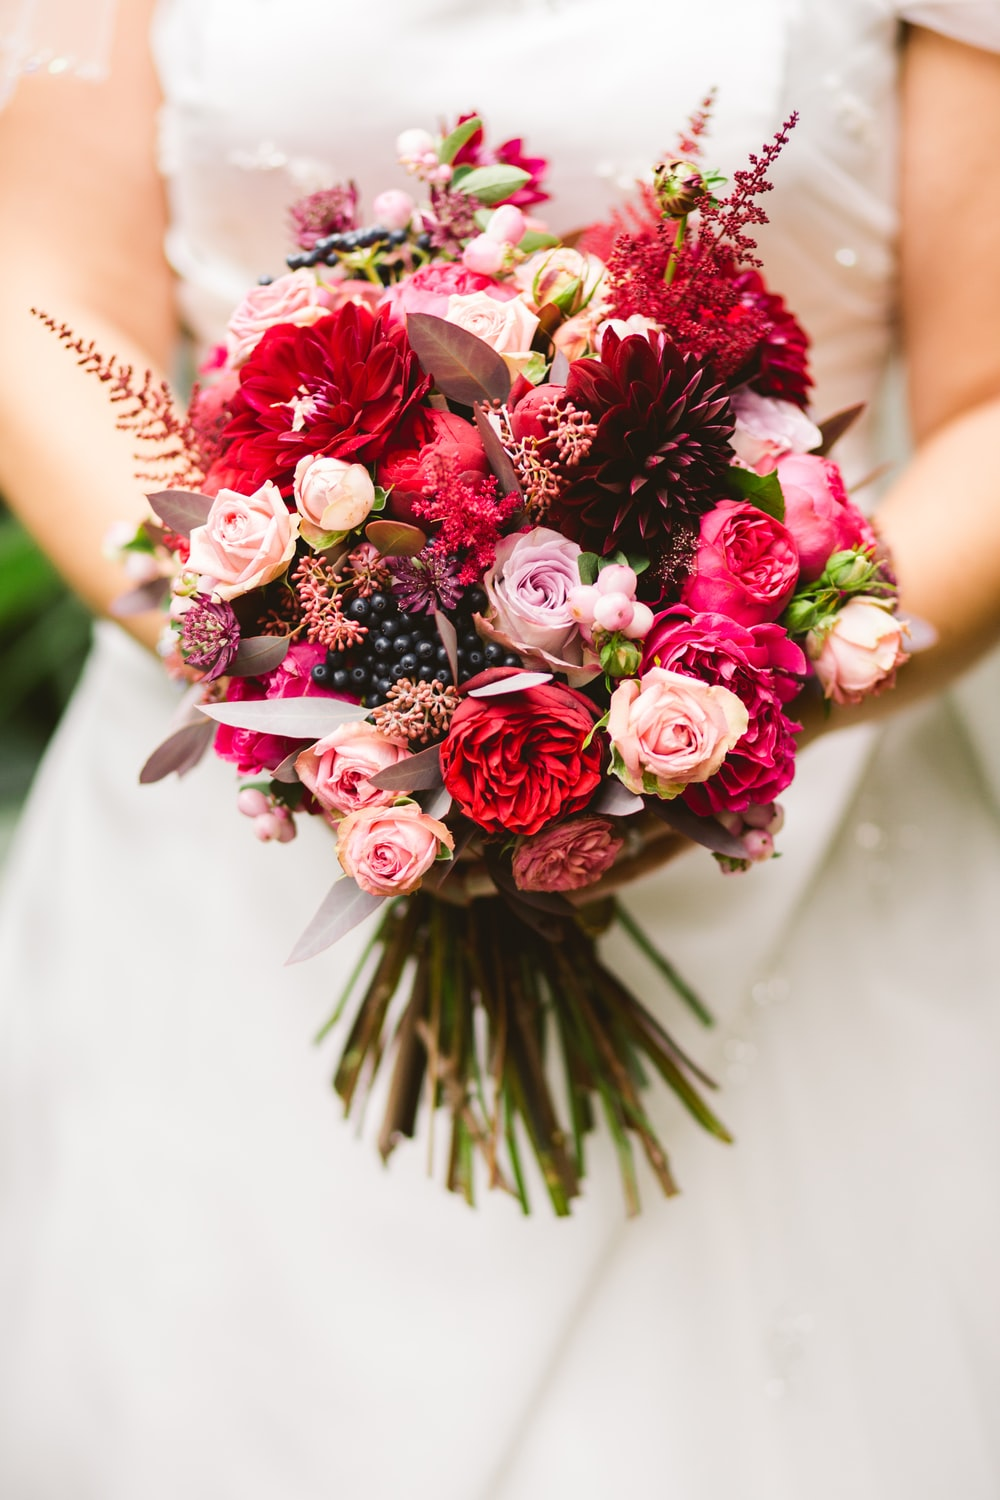 A vibrant bouquet photo by thomas ae thomasae on unsplash bride holding flower bouquet izmirmasajfo